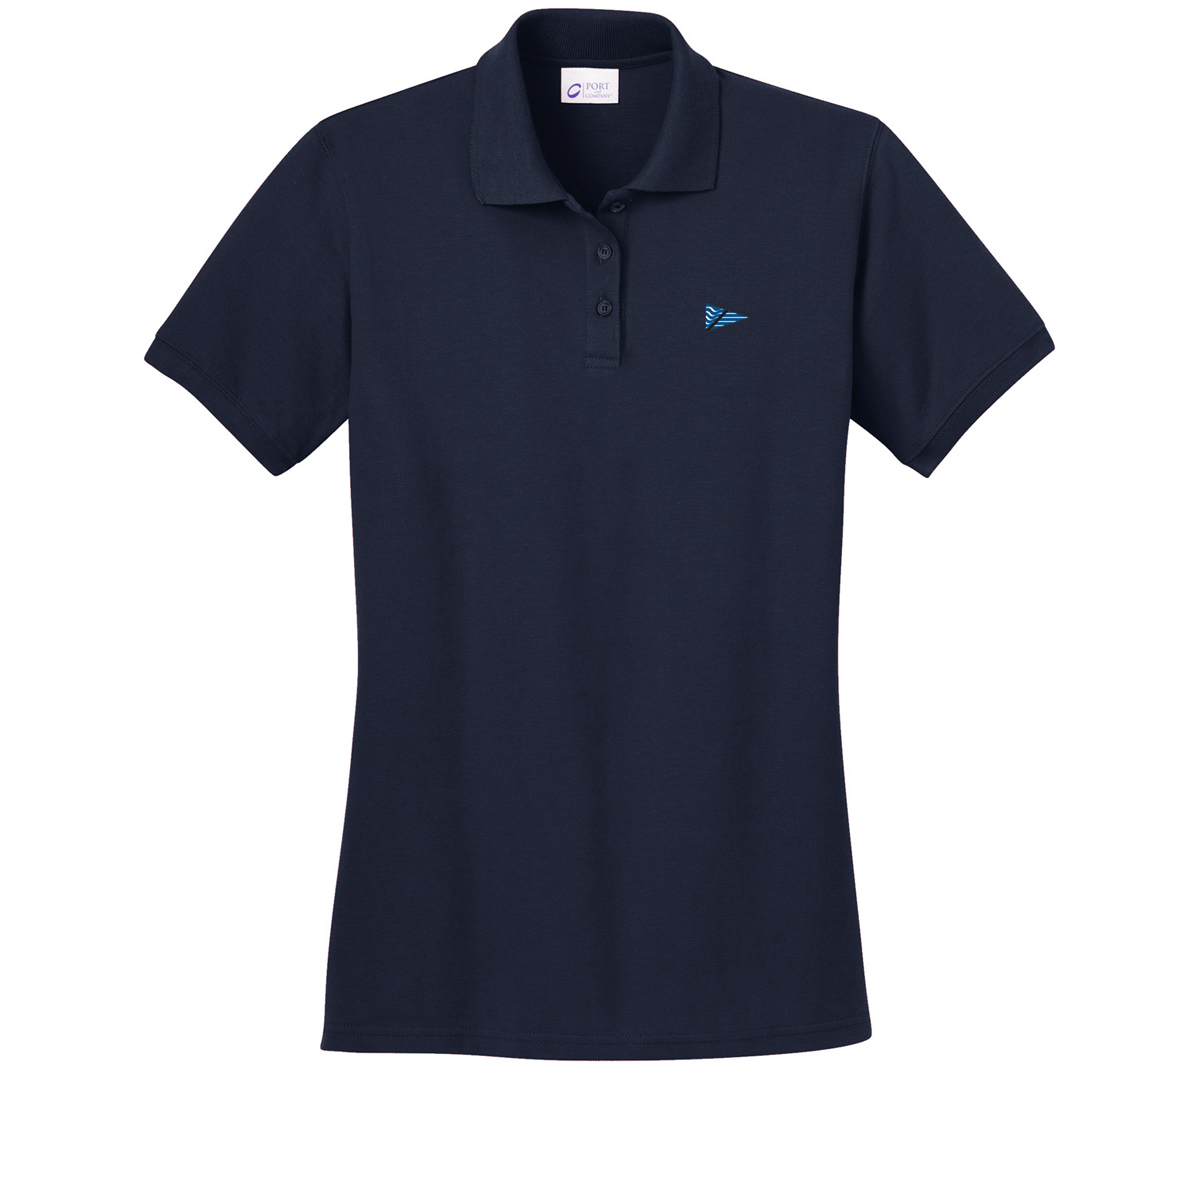 Breakwater Yacht Club - Women's Cotton Polo